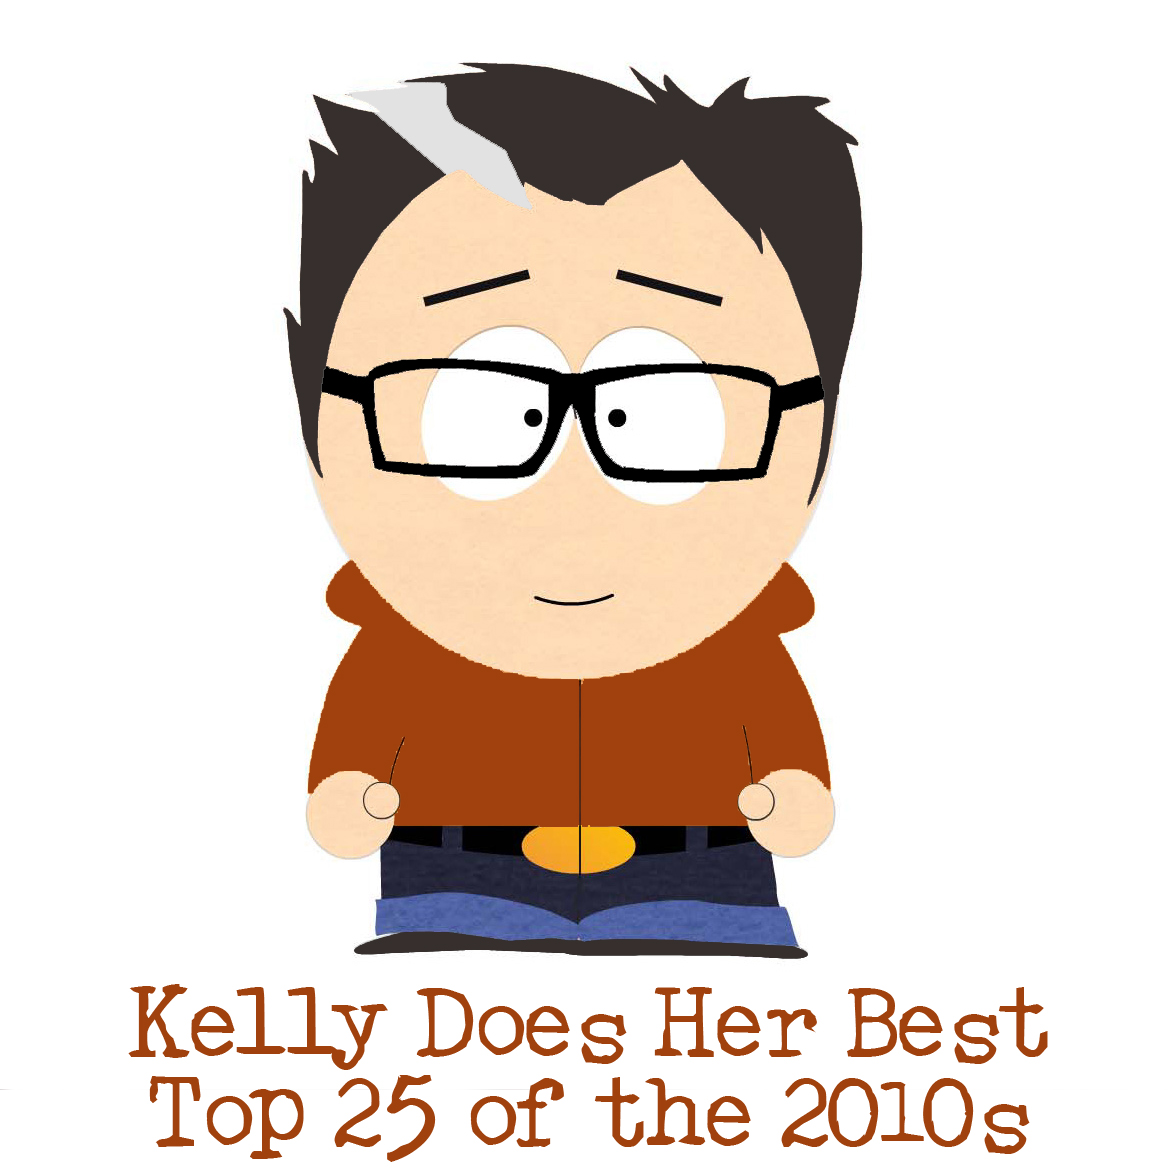 Kelly Does Her Best: Top 25 of the 2010s